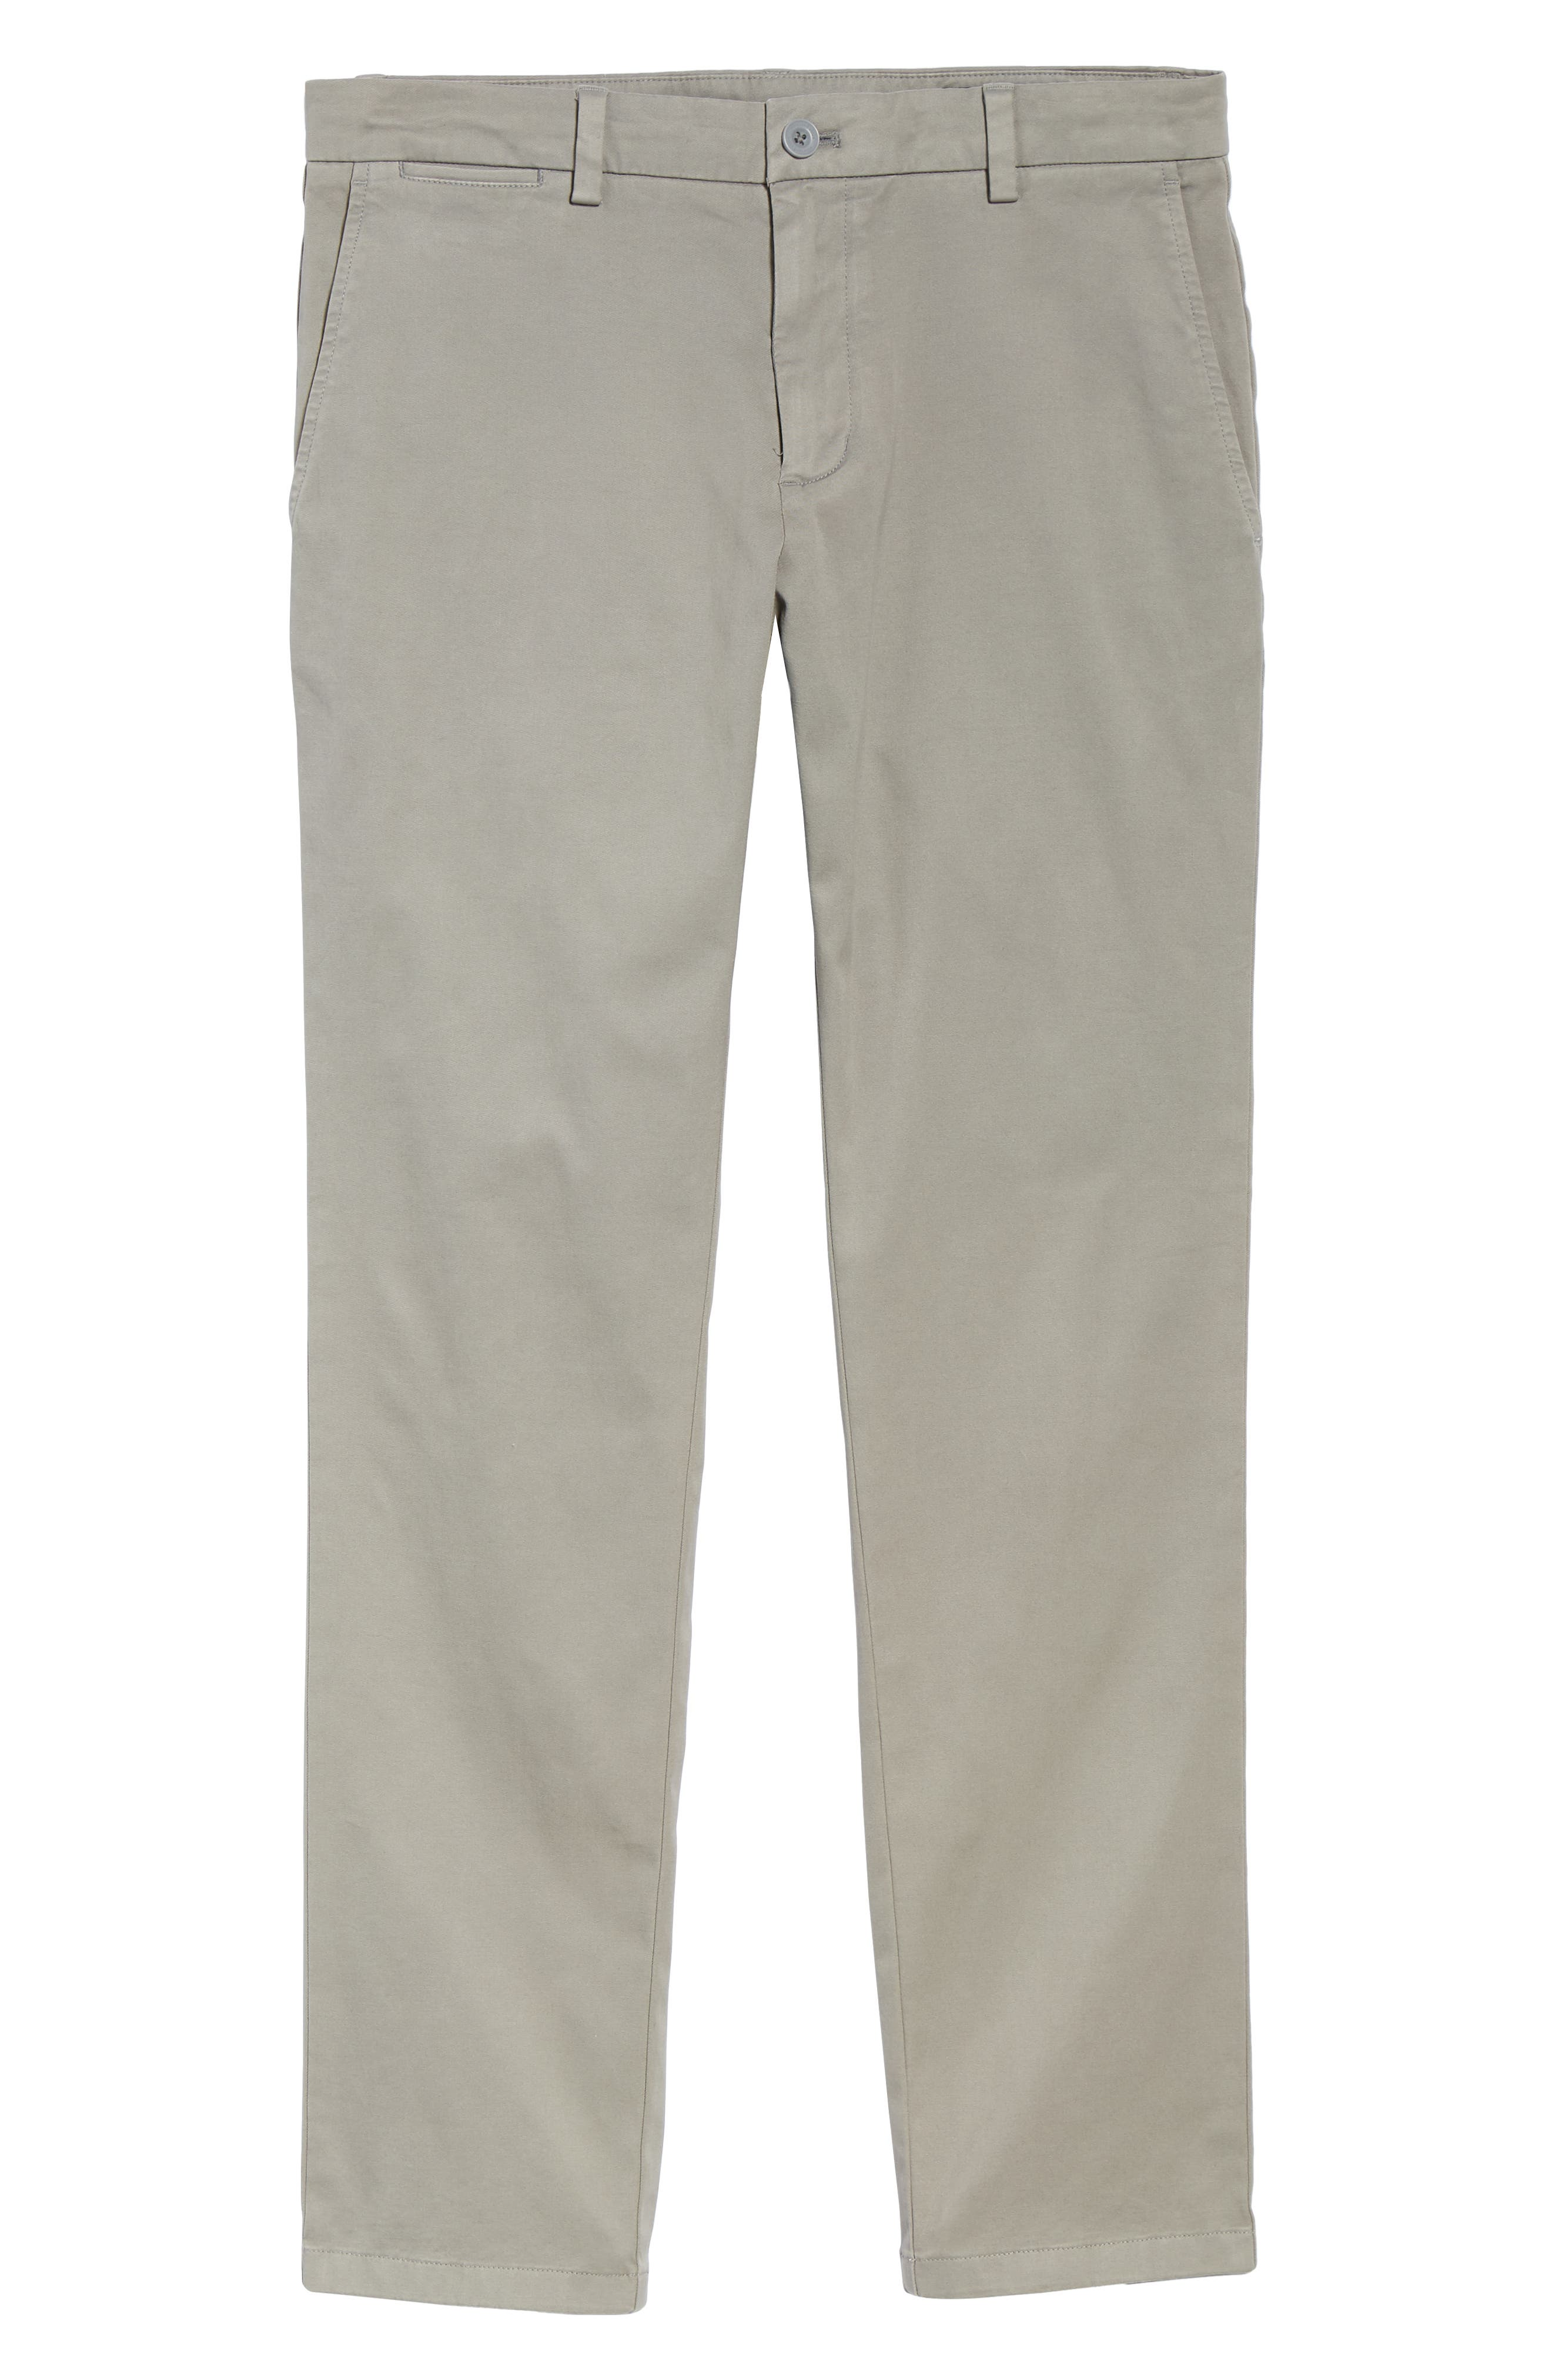 Stretch Slim Fit Pants,                             Alternate thumbnail 6, color,                             ANCHOR GREY